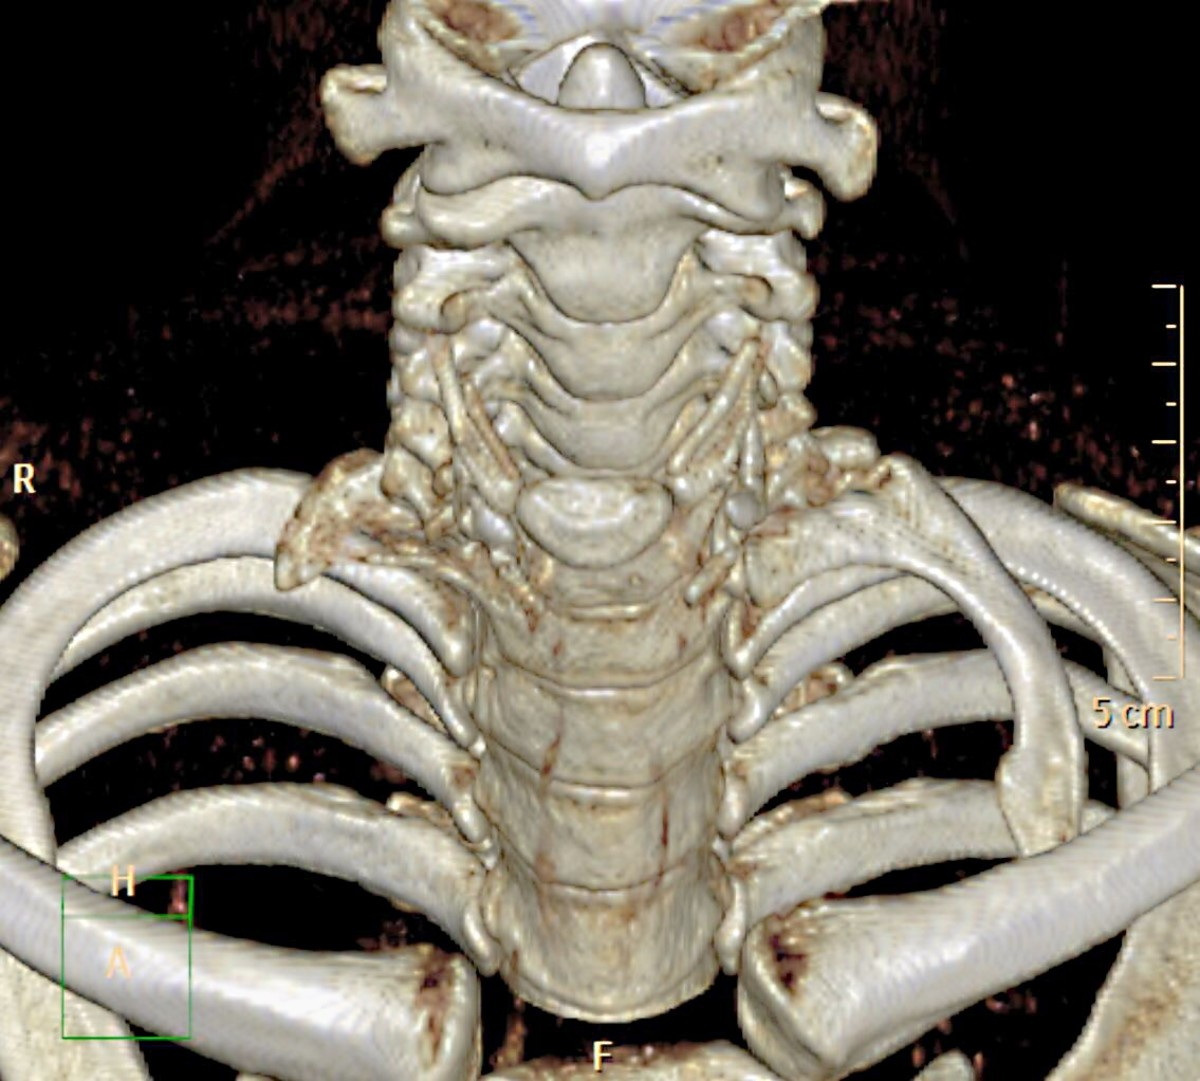 A 3D illustration of two cervical ribs above the normal ribs. One of the cervical ribs is more developed than the other,